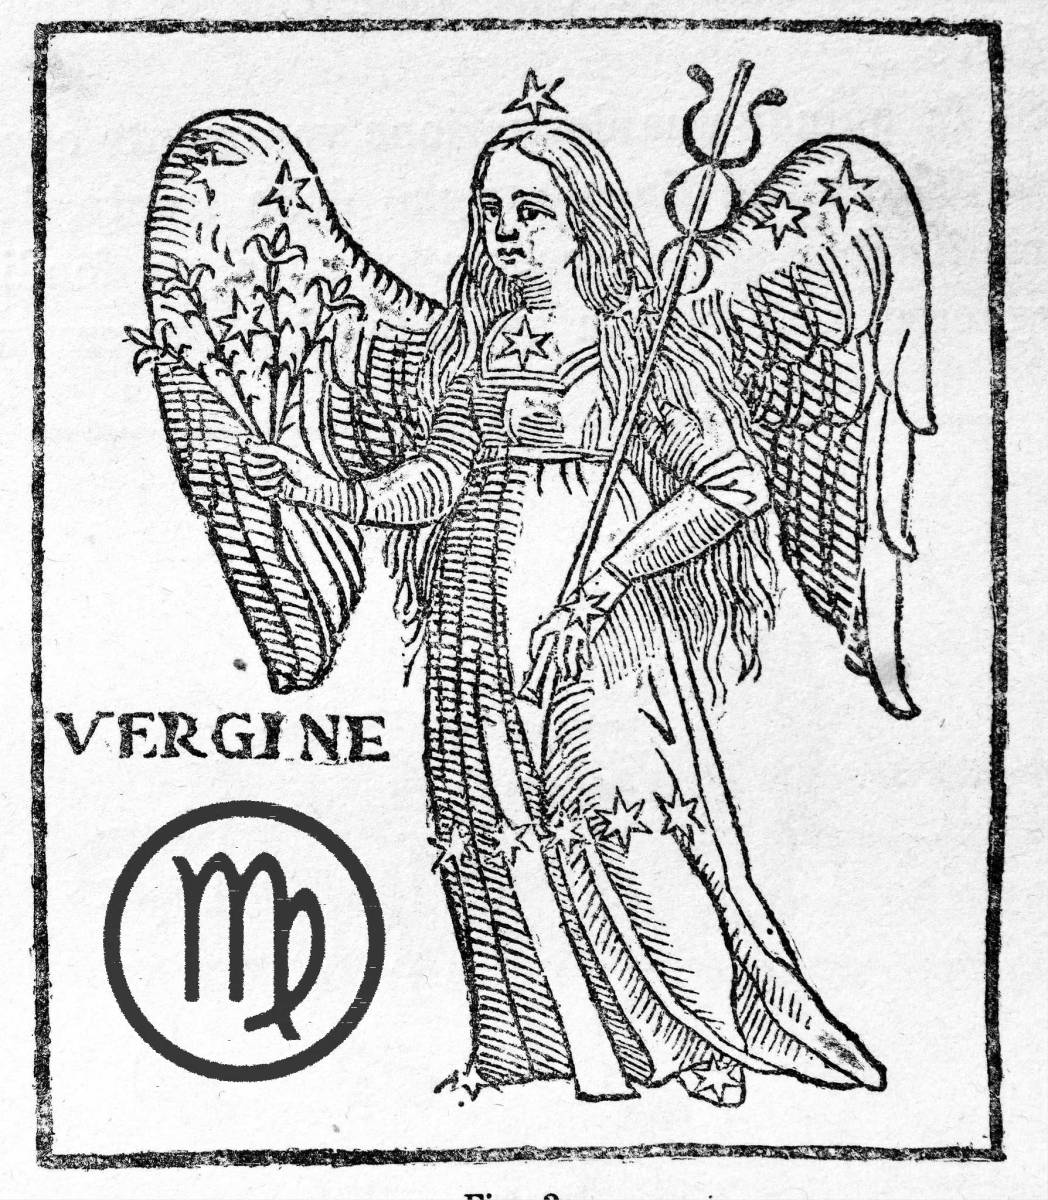 Virgo the 6th astrological sign of the zodiac as defined by my virgo the 6th astrological sign of the zodiac as defined by my german wife oh god my wife is german buycottarizona Gallery